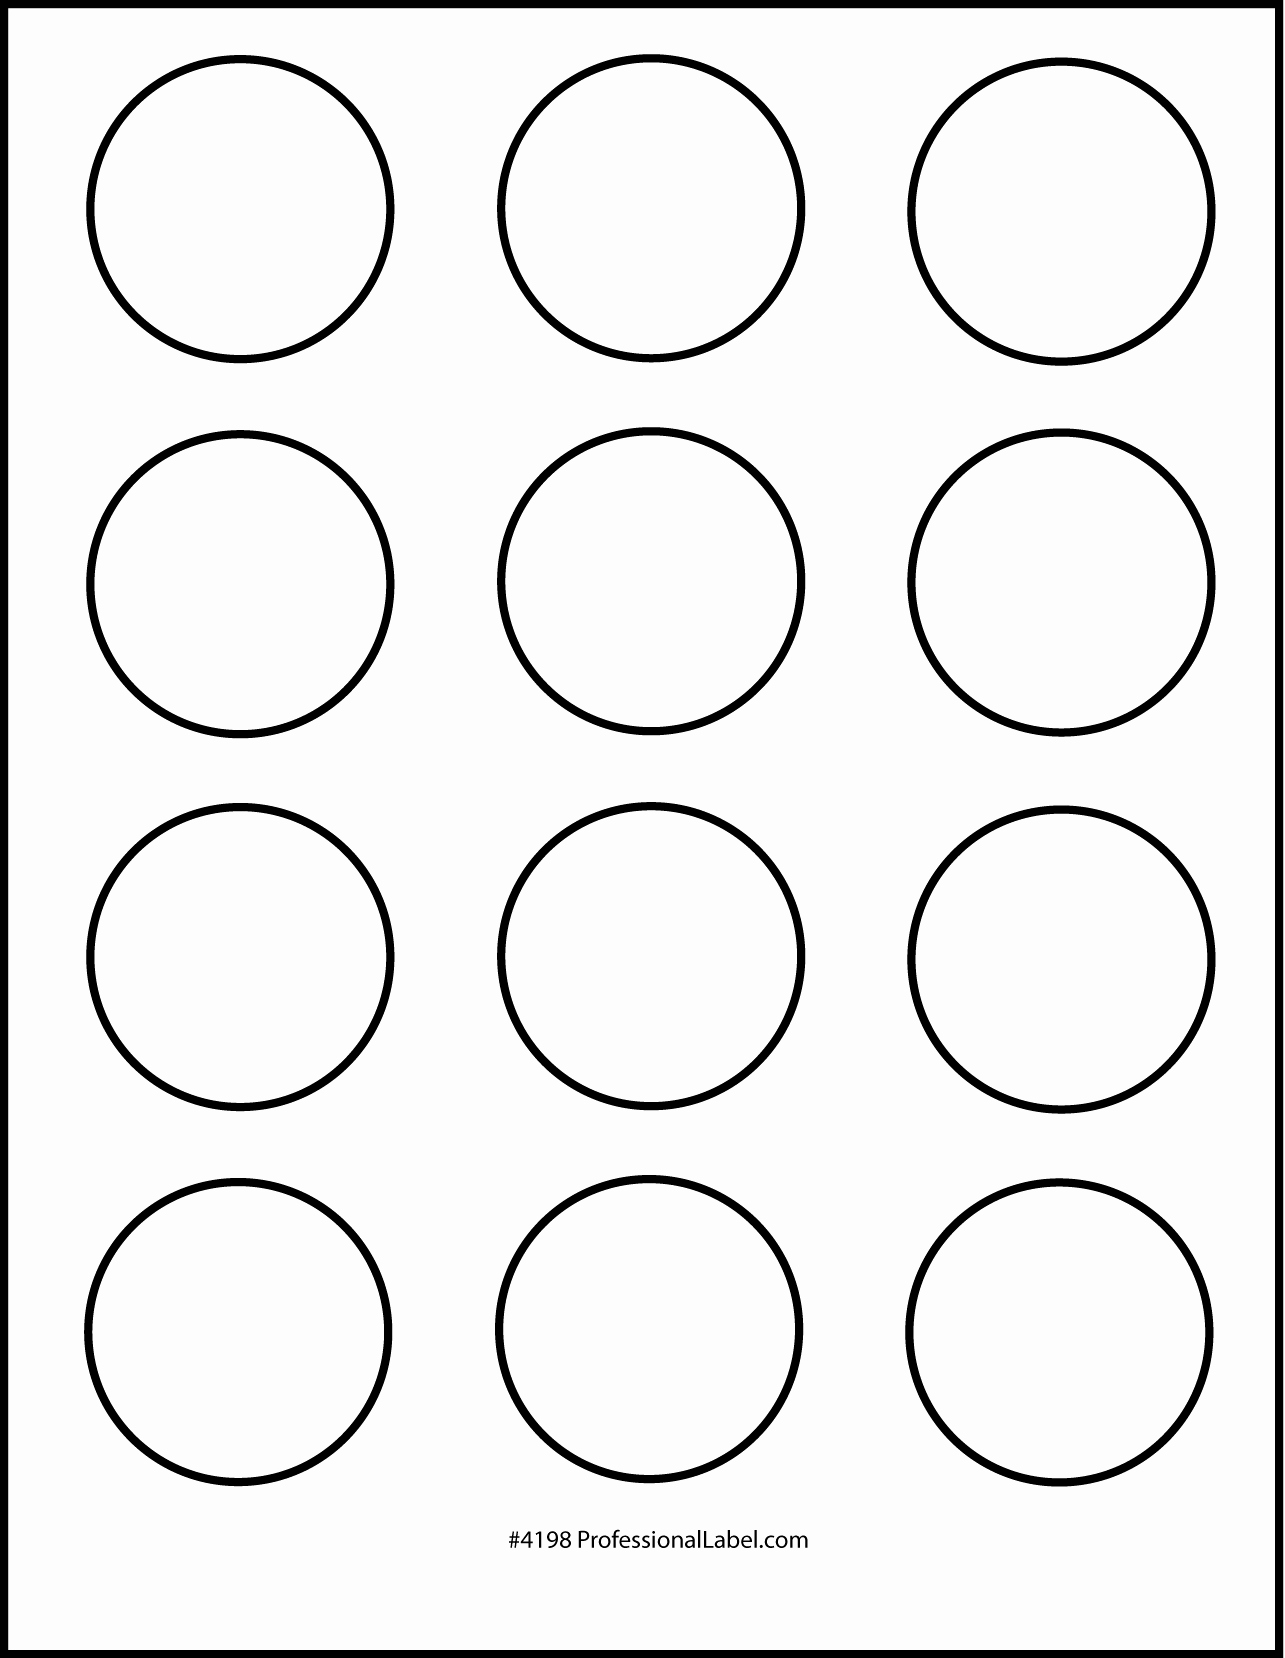 1 Inch Circle Template Elegant Matte White Printable Sticker Labels 250 Sheets 2 Inch